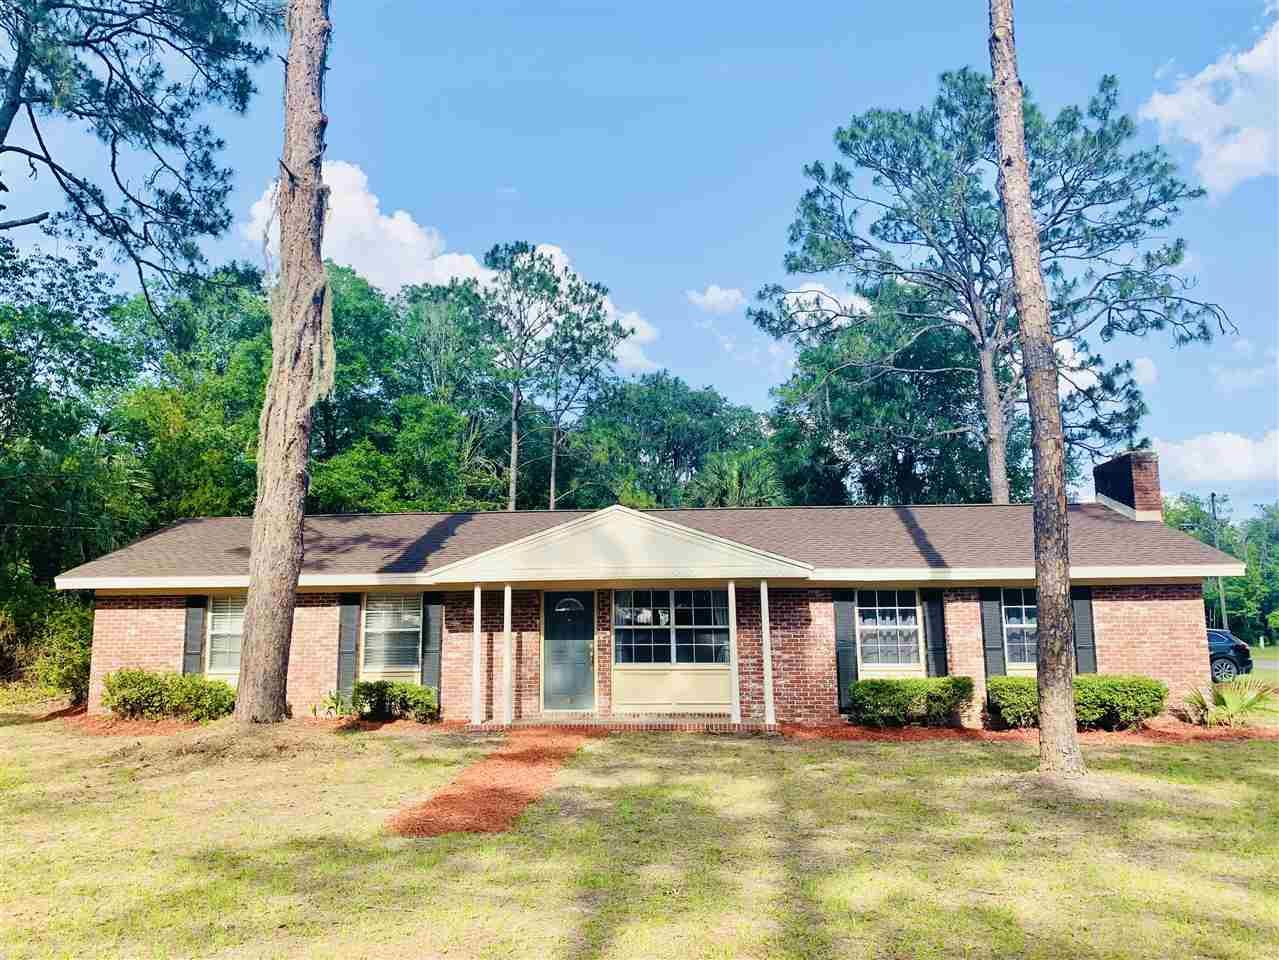 118 Marshall Drive, Perry, FL 32347 - MLS#: 319119